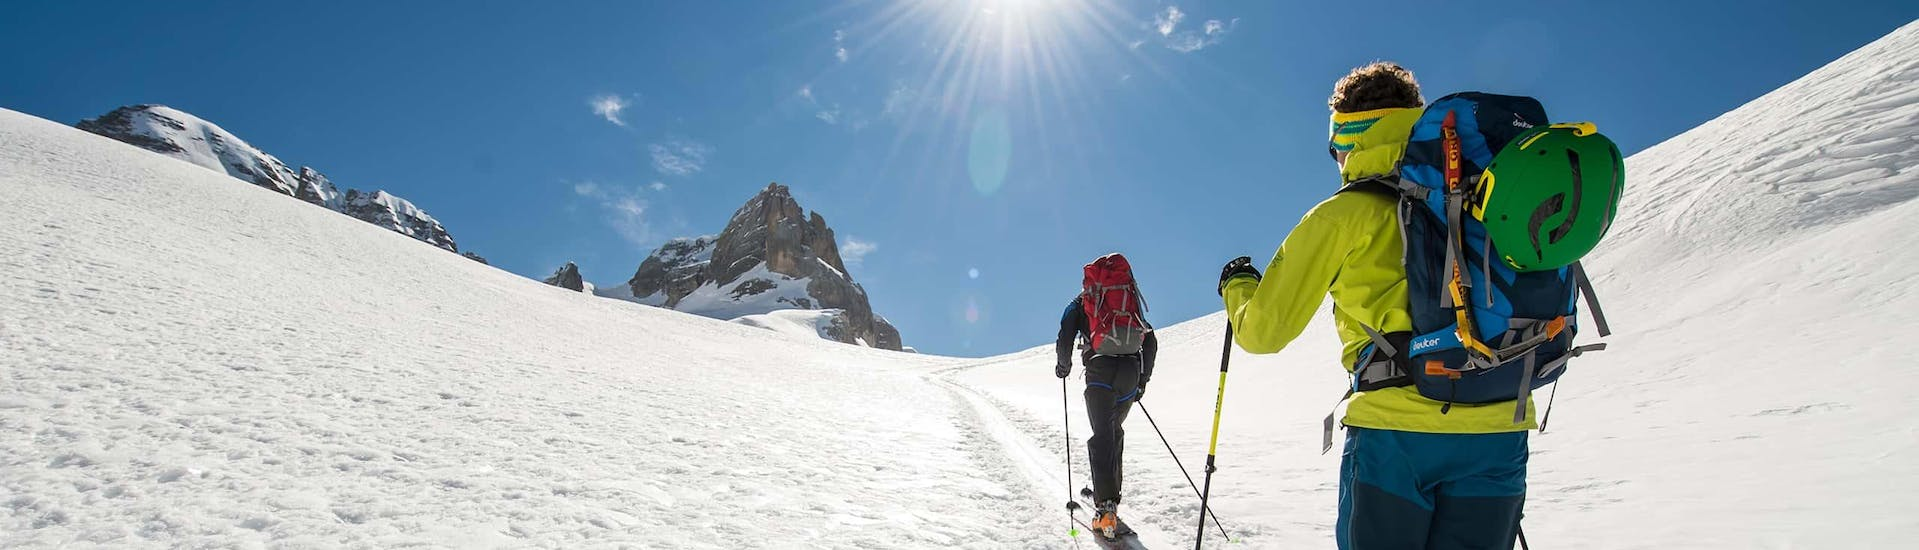 A skier following his Ski touring with your private guide from Ski- & Snowboardschule Innsbruck up to the top of the mountain while out ski touring.